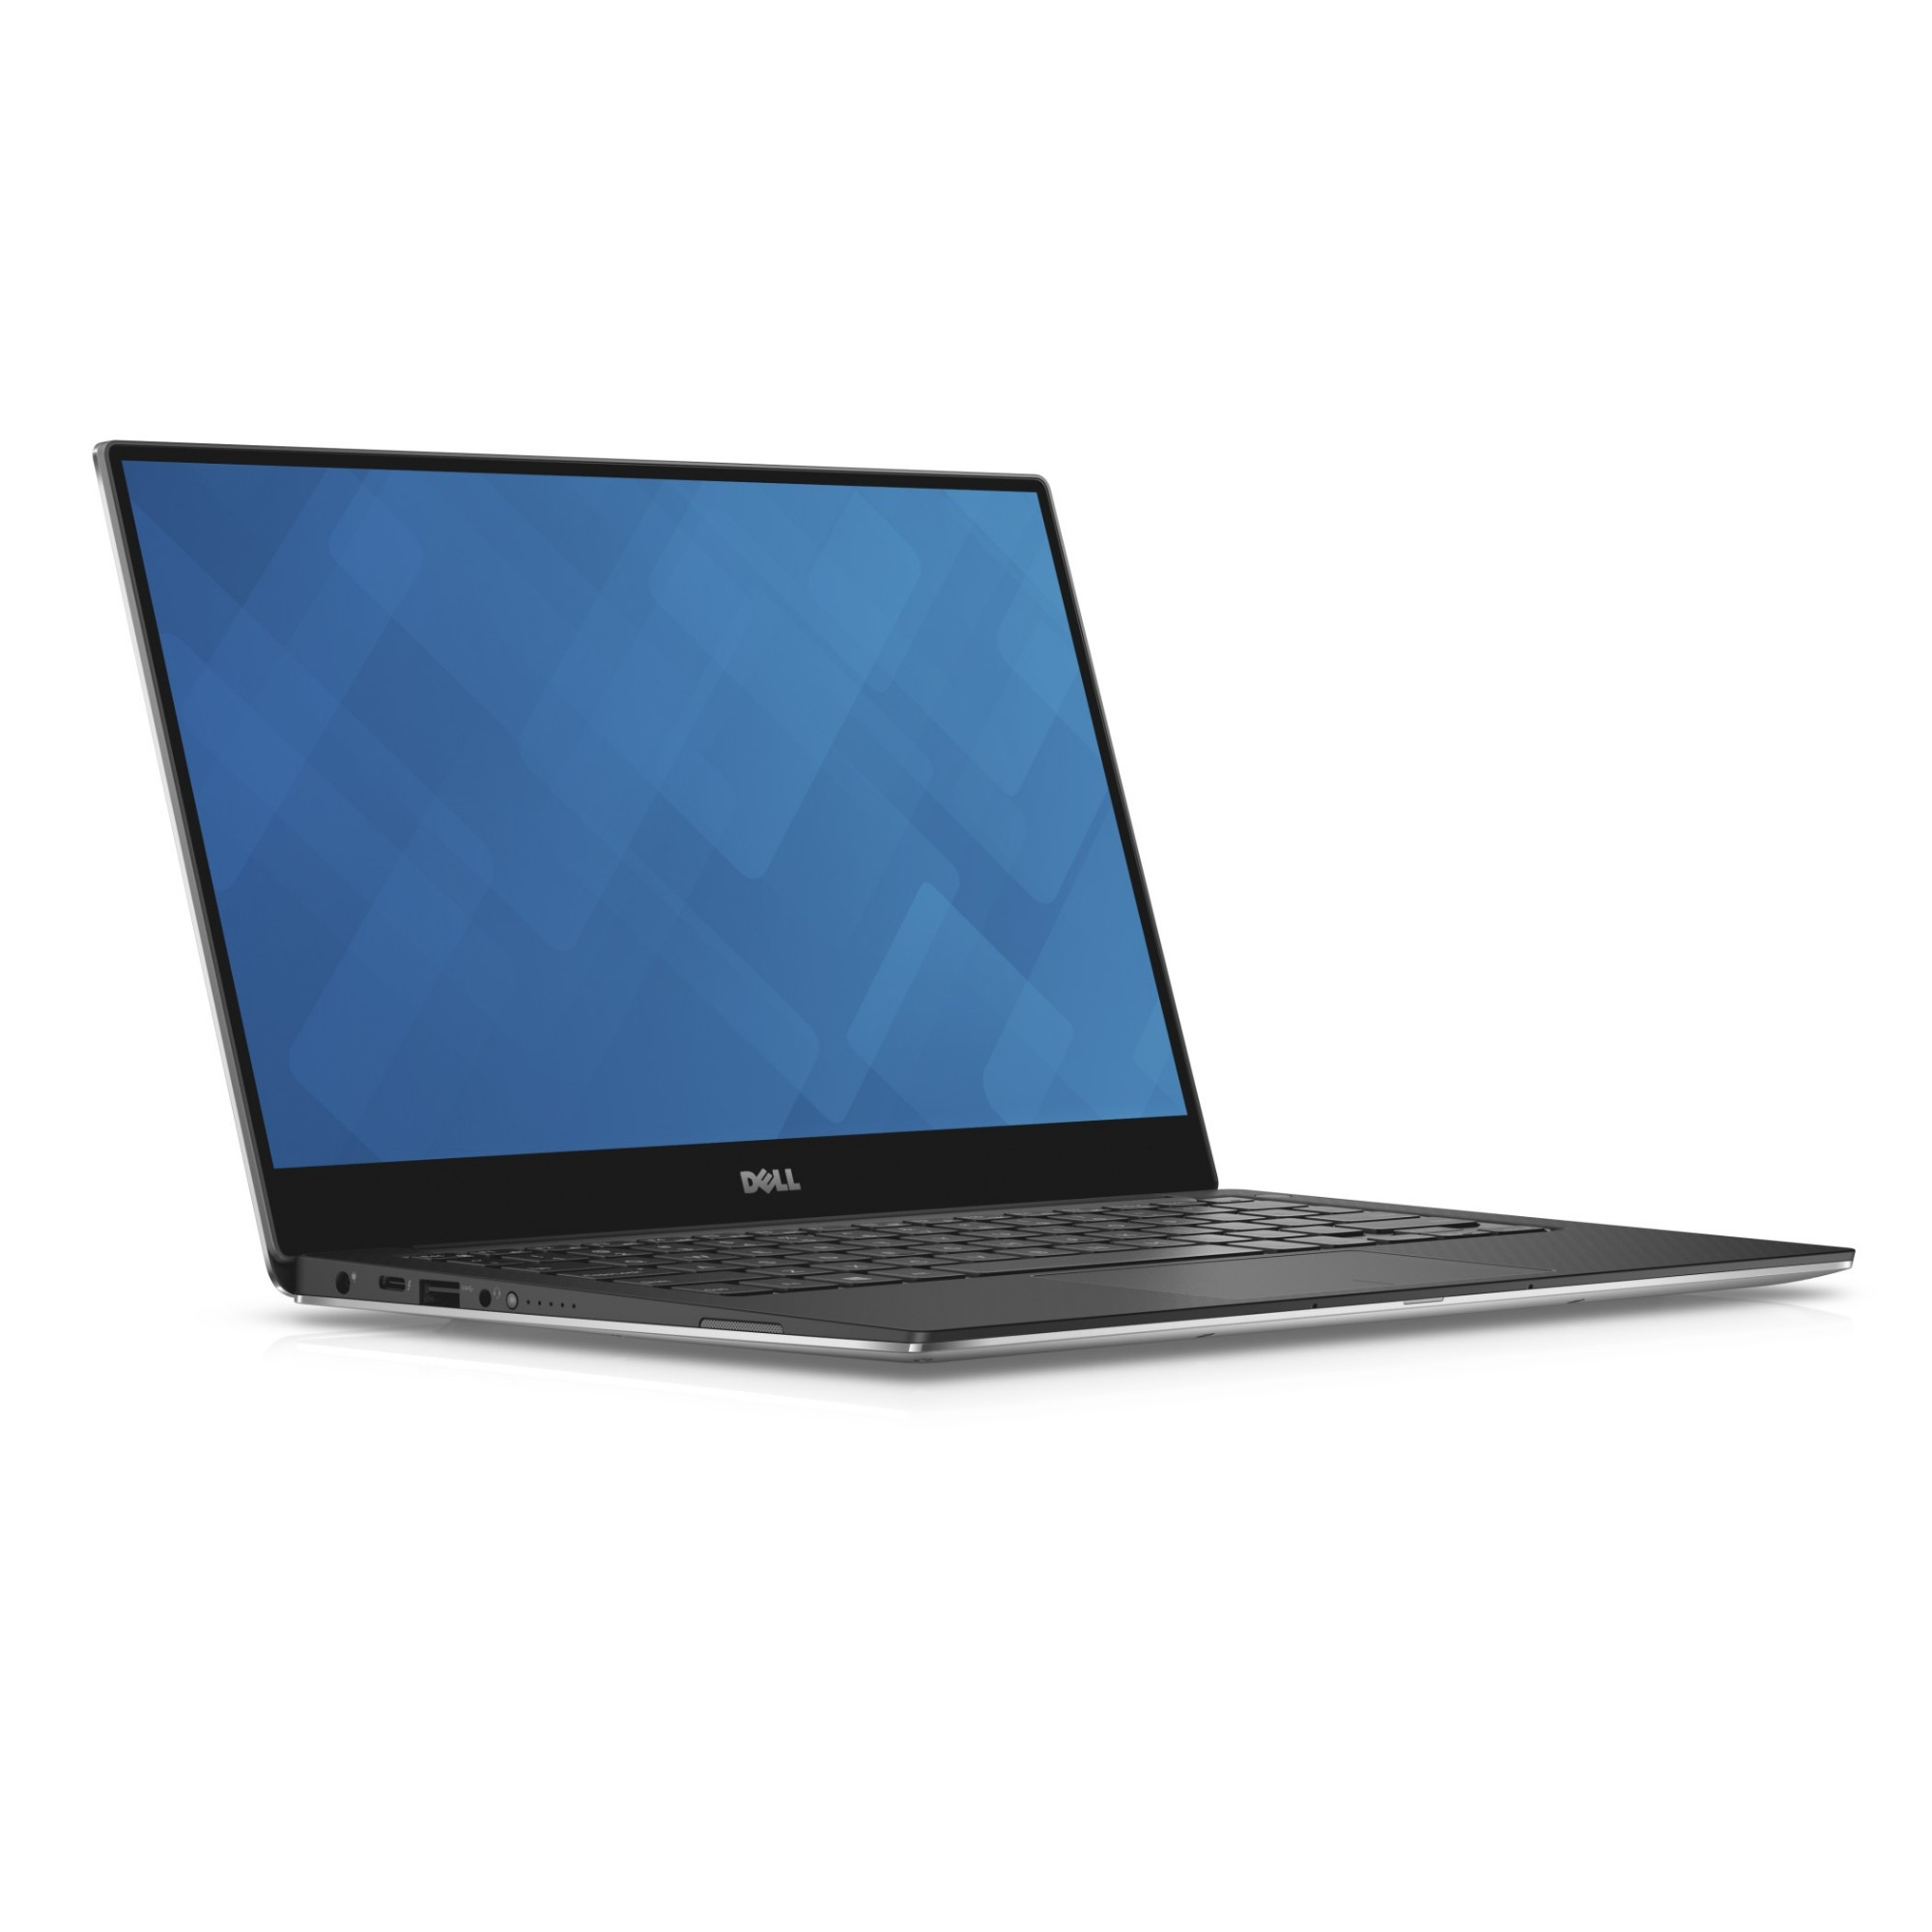 "DELL XPS 9360 1.6GHz i5-8250U 13.3"" 3200 x 1800pixels Touchscreen Black, Silver Notebook"